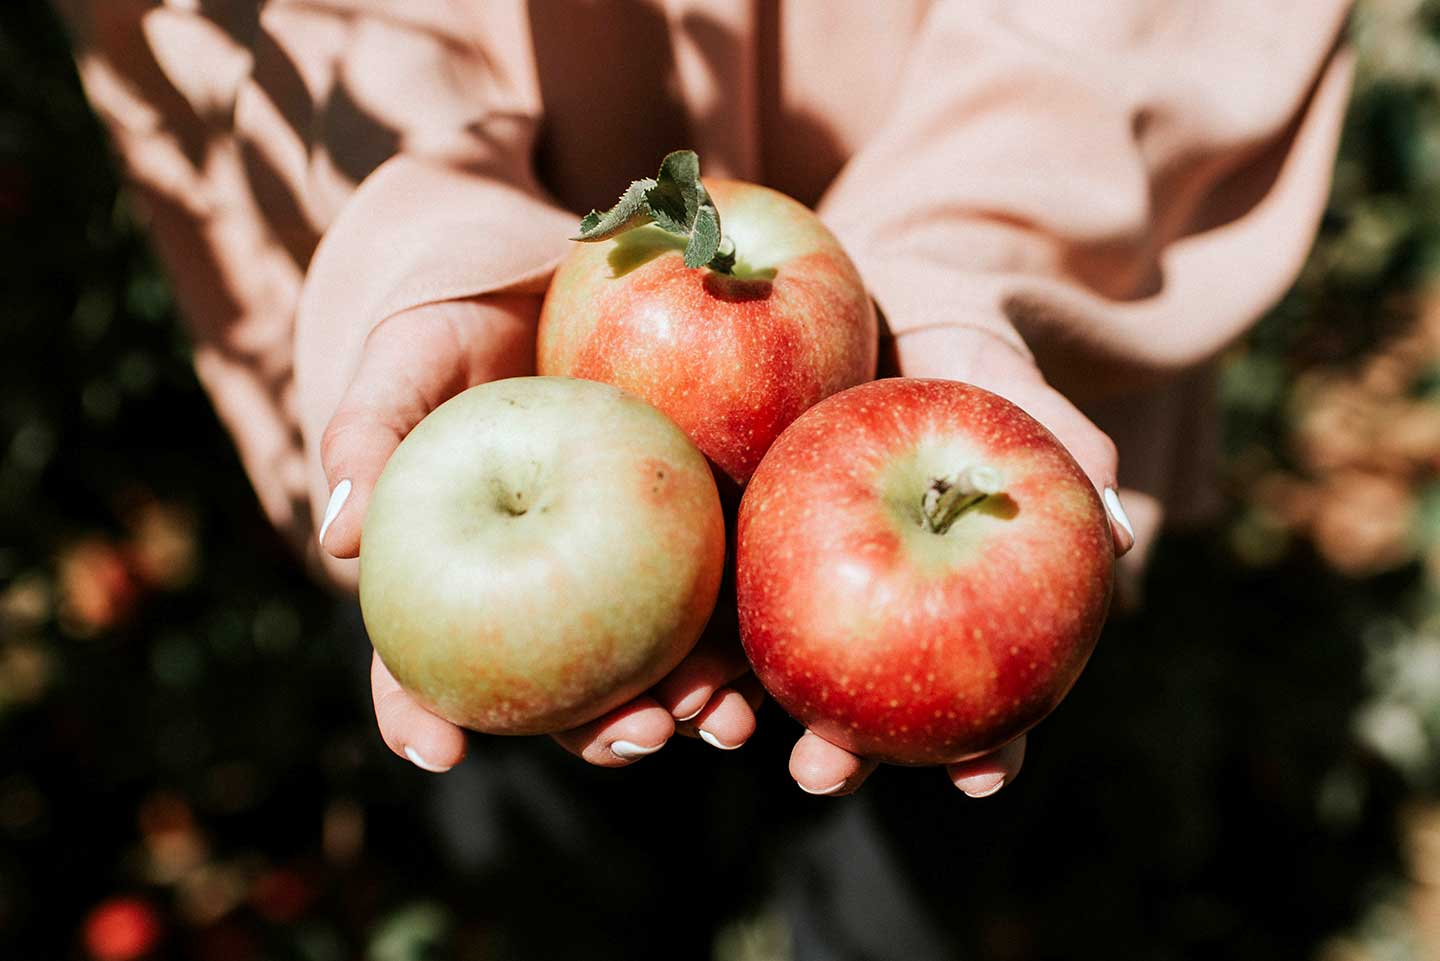 holding.apples